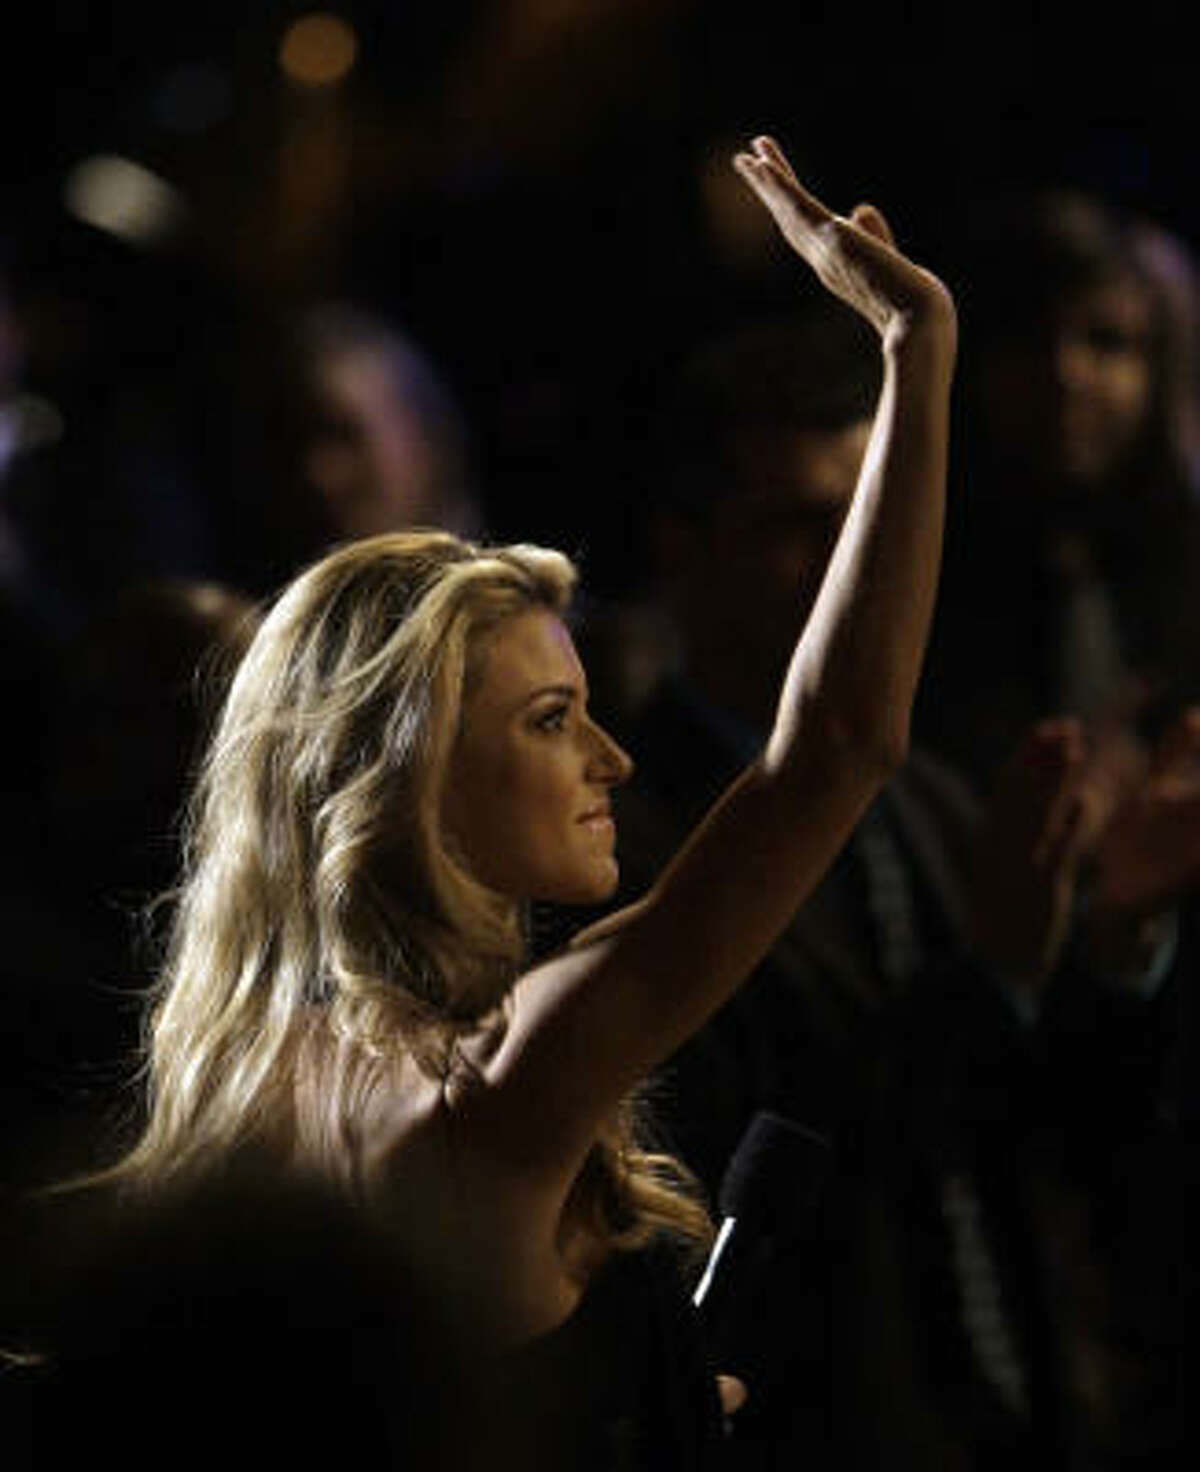 Miss California Carrie Prejean waves to the crowd as she receives a standing ovation during her introduction of a performance at the Dove Awards in Nashville, Tenn., Thursday, April 23.